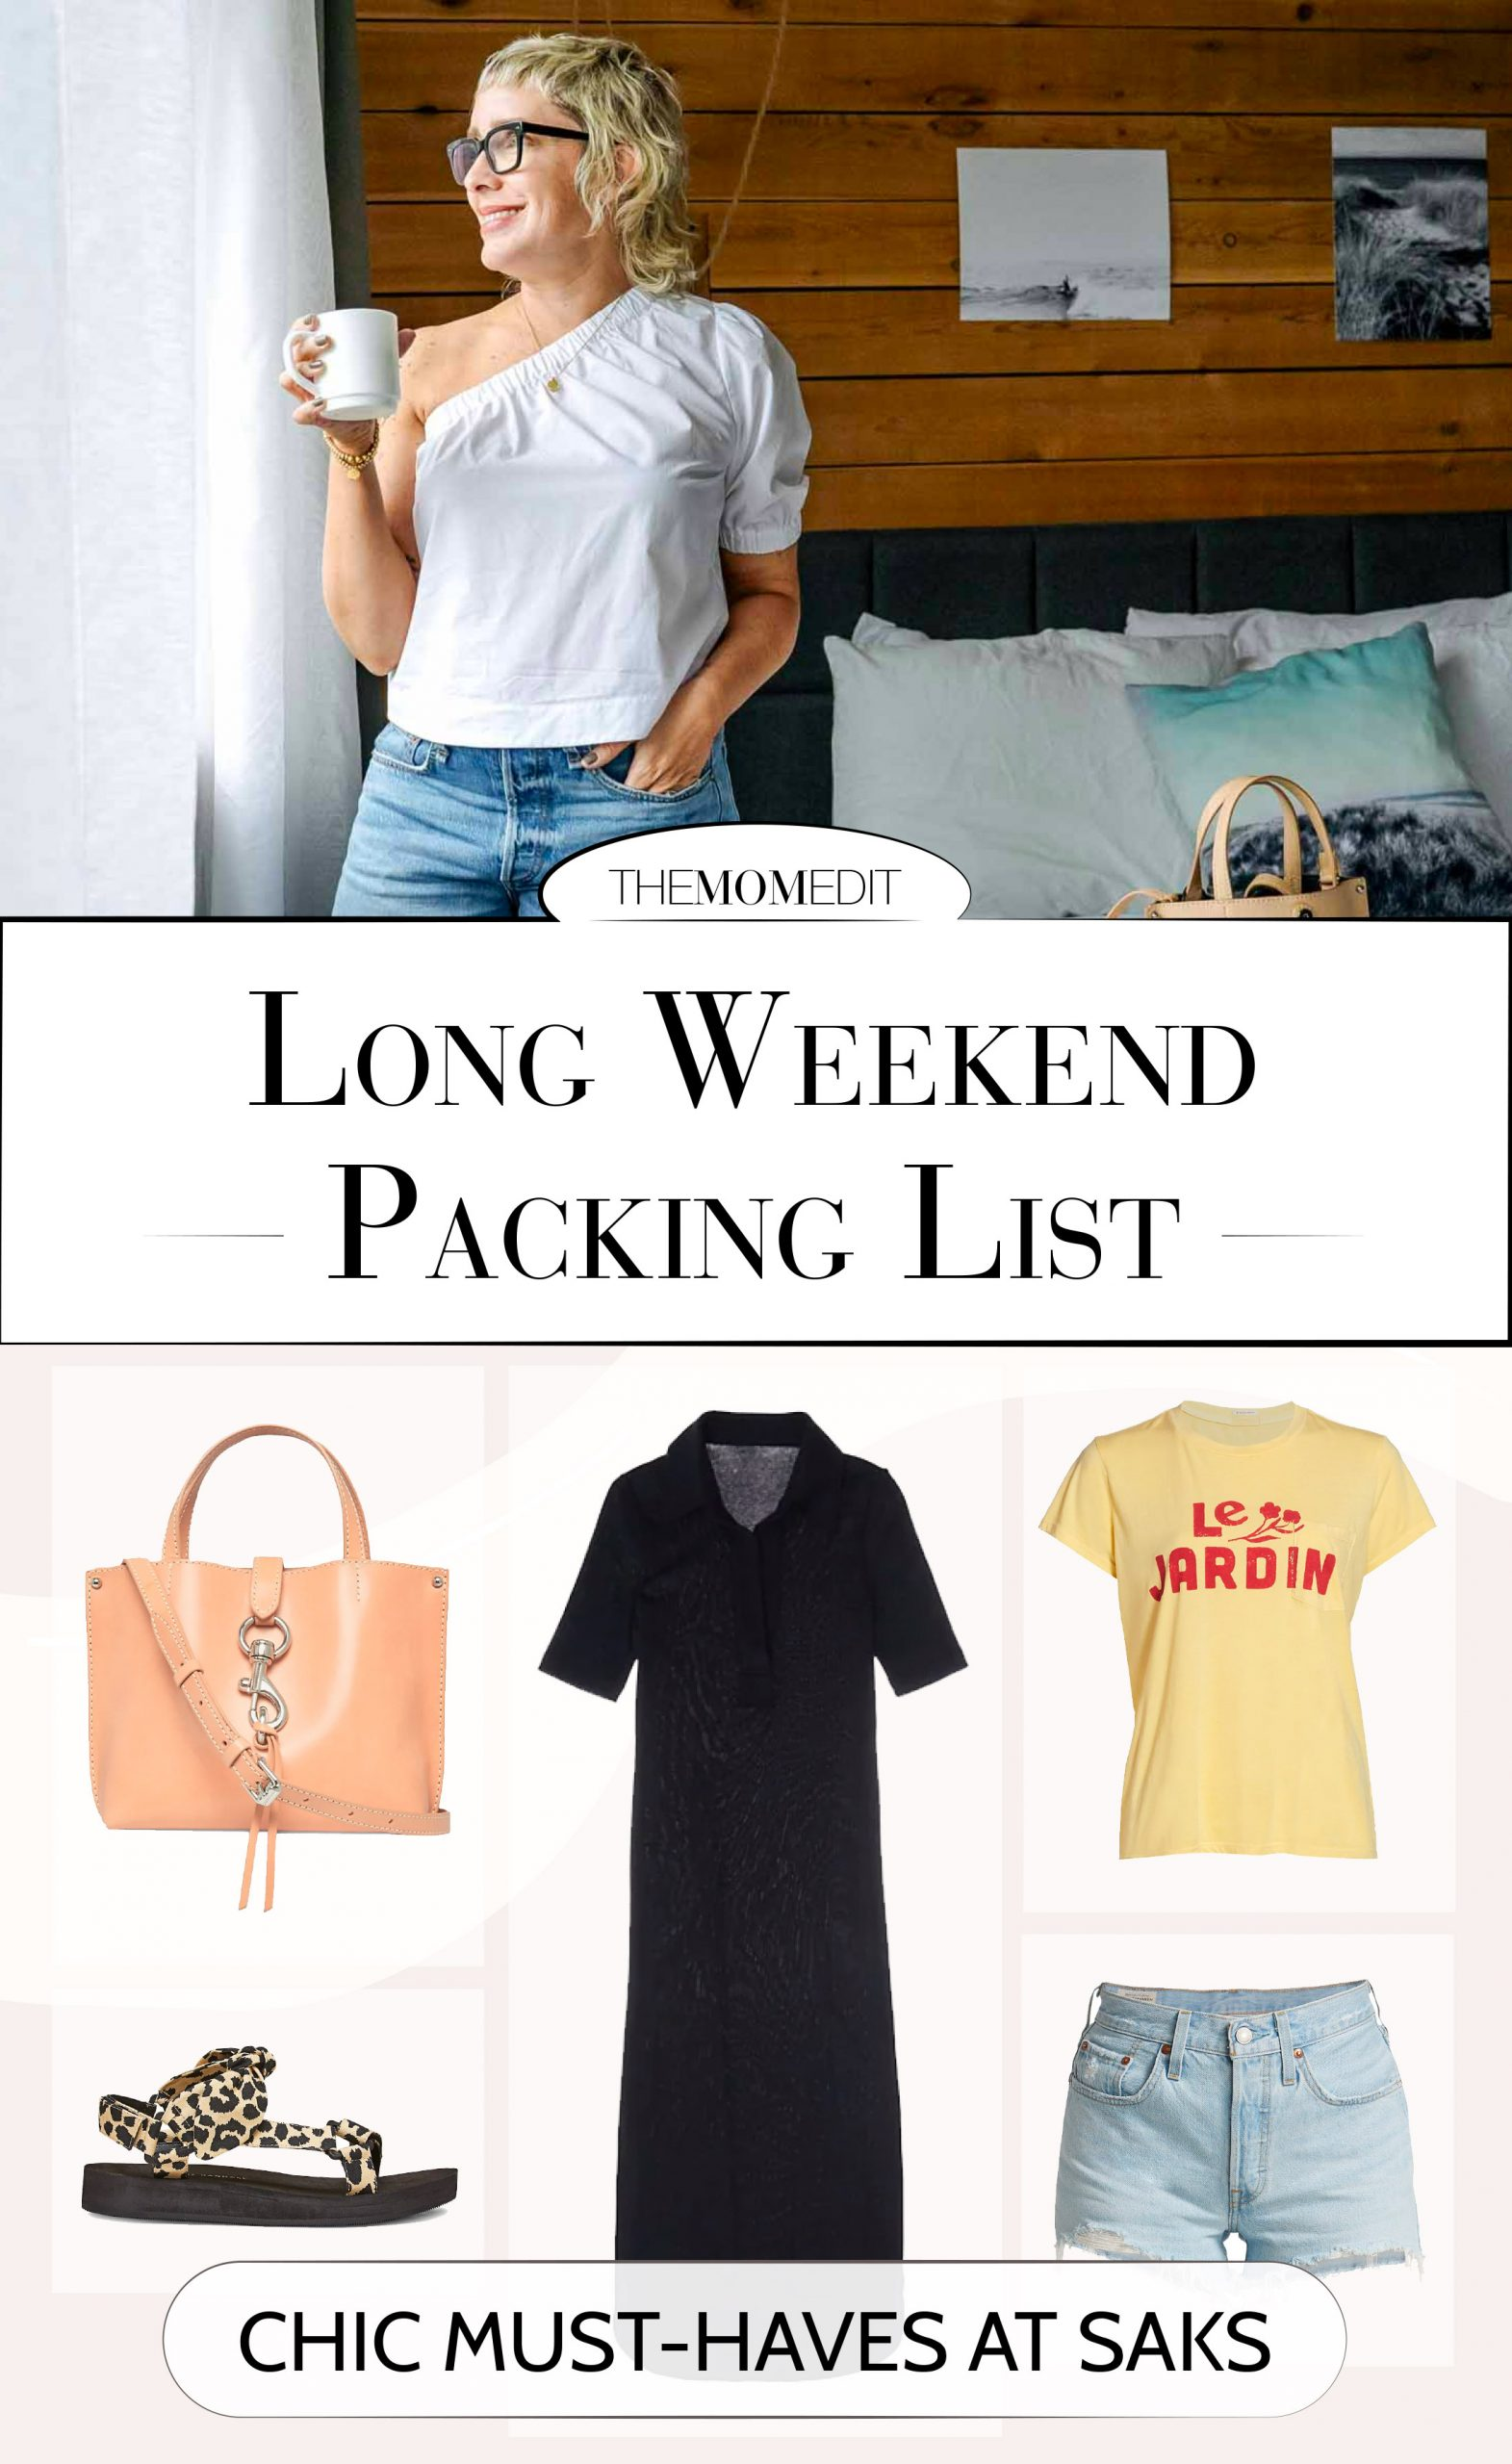 Trying to pack lightly? These 5 easy-yet-chic pieces at Saks are just right for a weekend away without much effort, but with style + comfort…